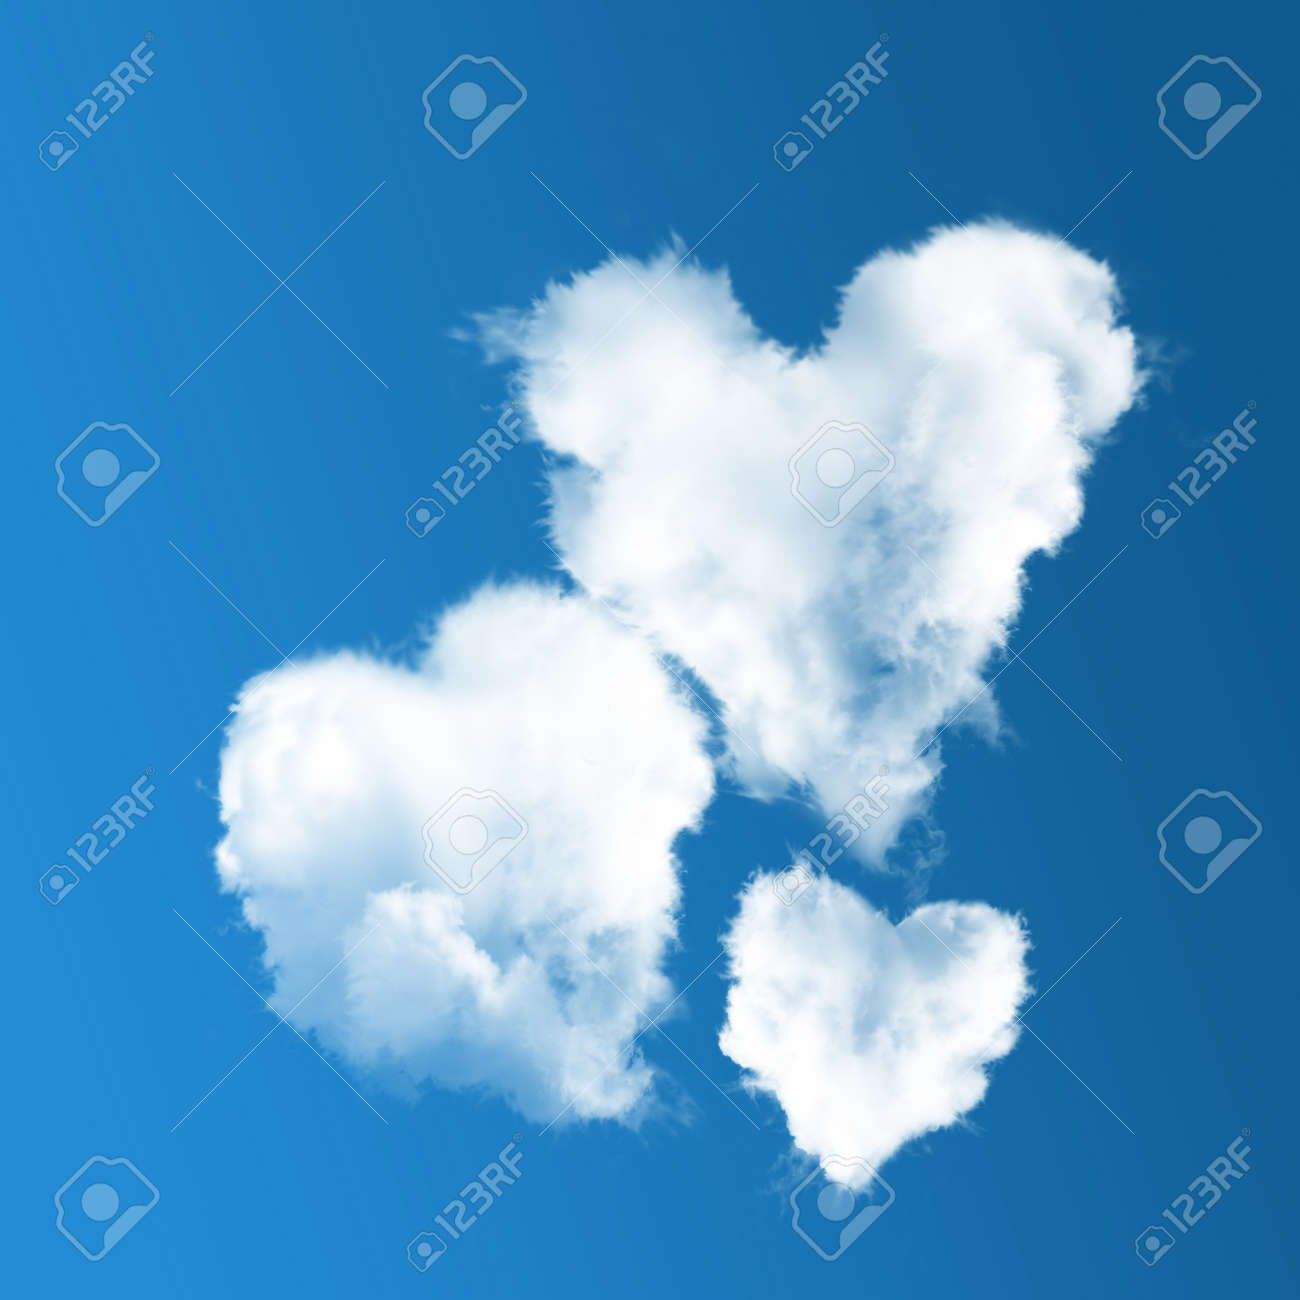 Free photo White Dense Flat Clouds Background Anvil Shaped - Max Pixel